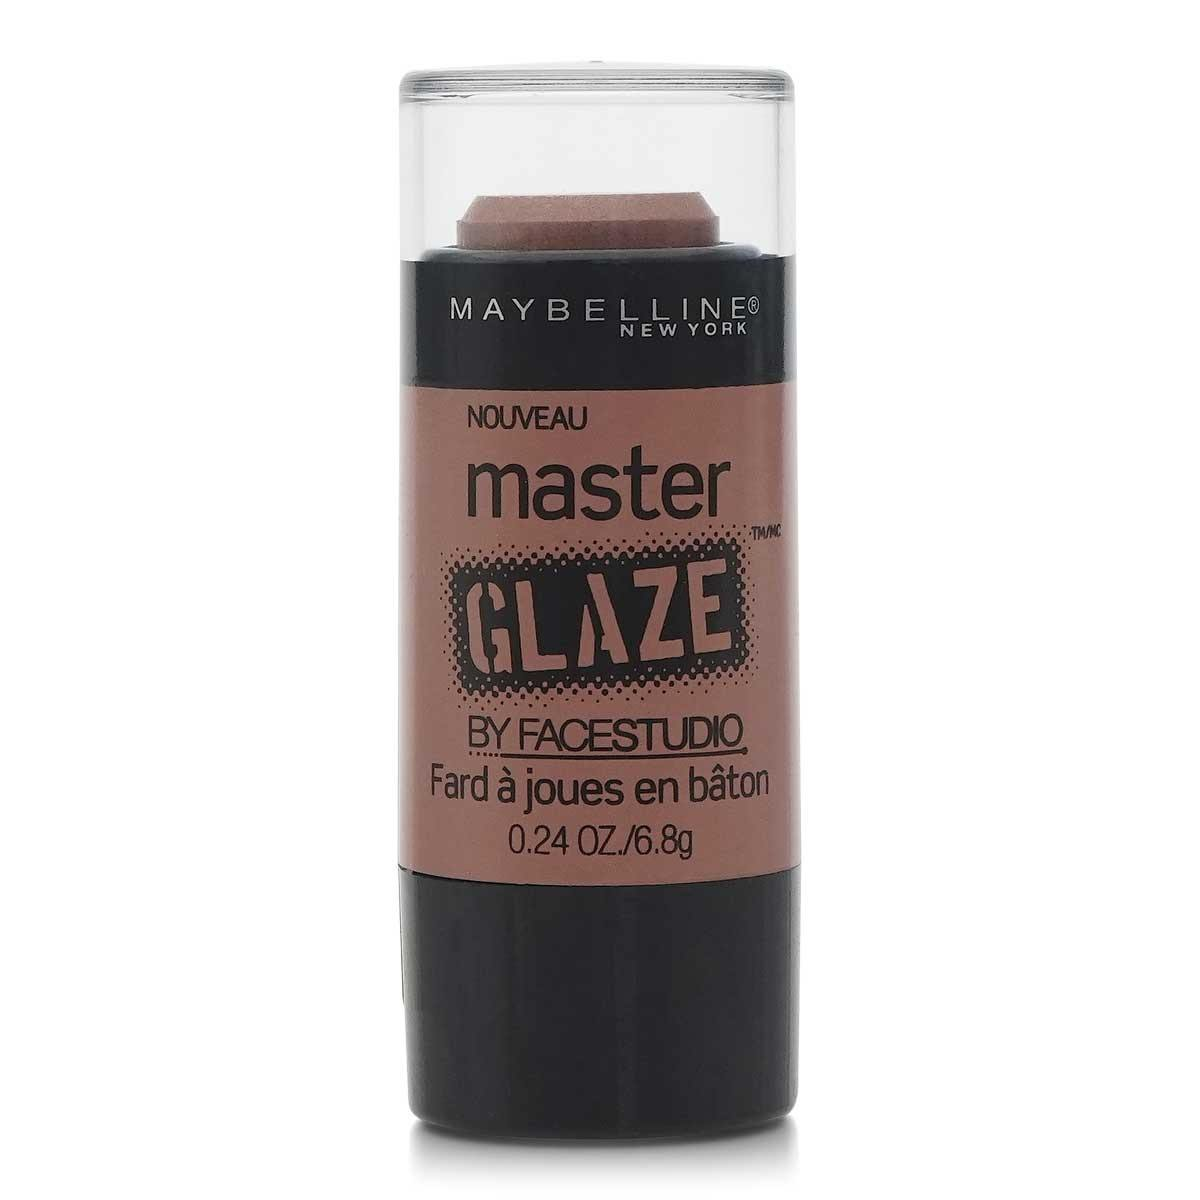 MAYBELLINE MASTER GLAZE BLUSH STICK Ð WARM NUDE (24/cs)